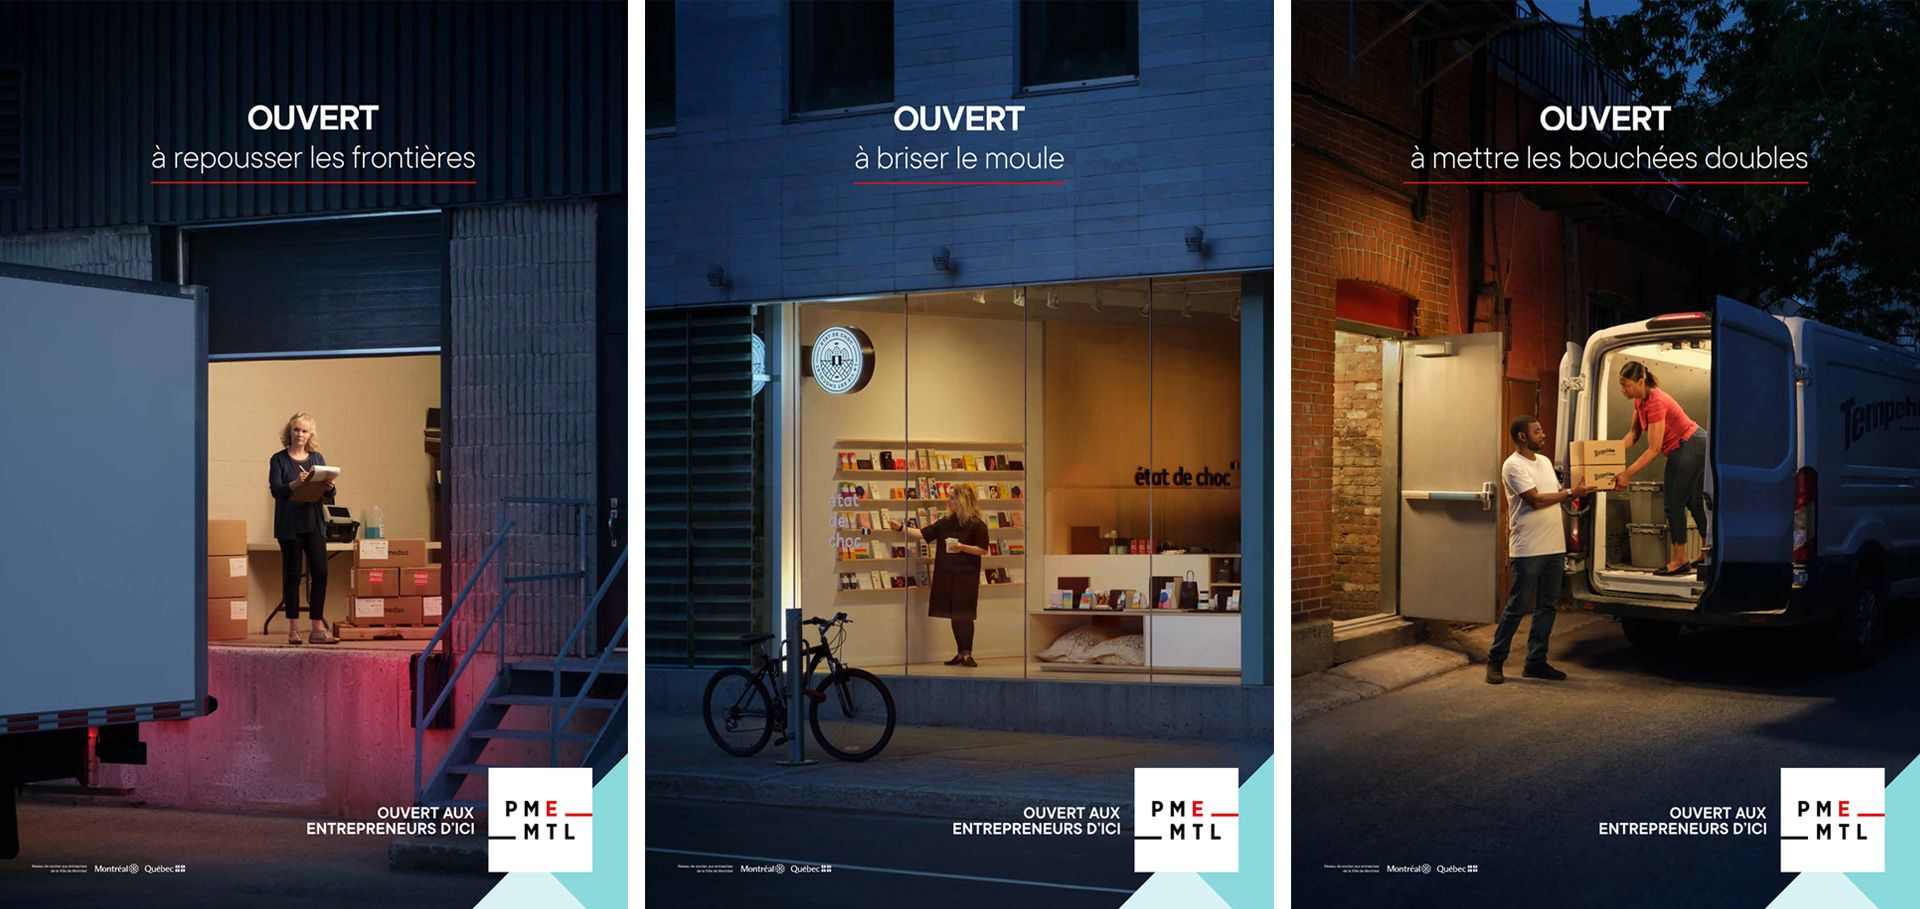 posters of PME MTL 'open' campaign by Simon Duhamel in collaboration with K72